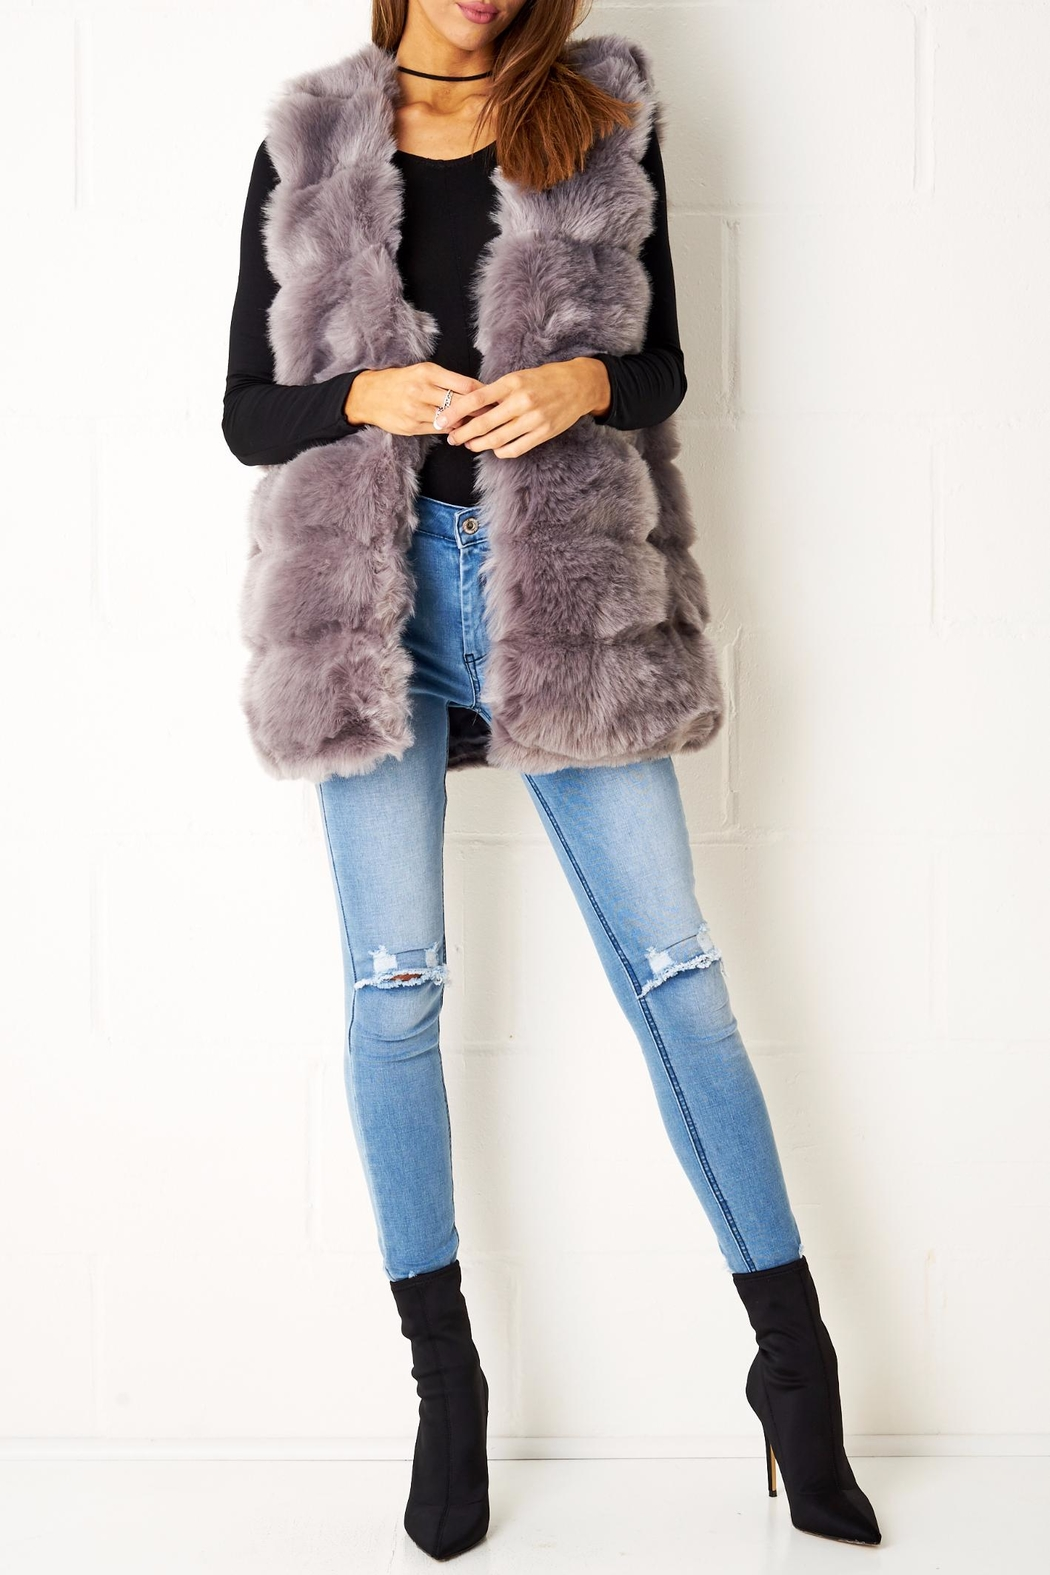 frontrow Fur Gilet Grey Vest - Front Cropped Image